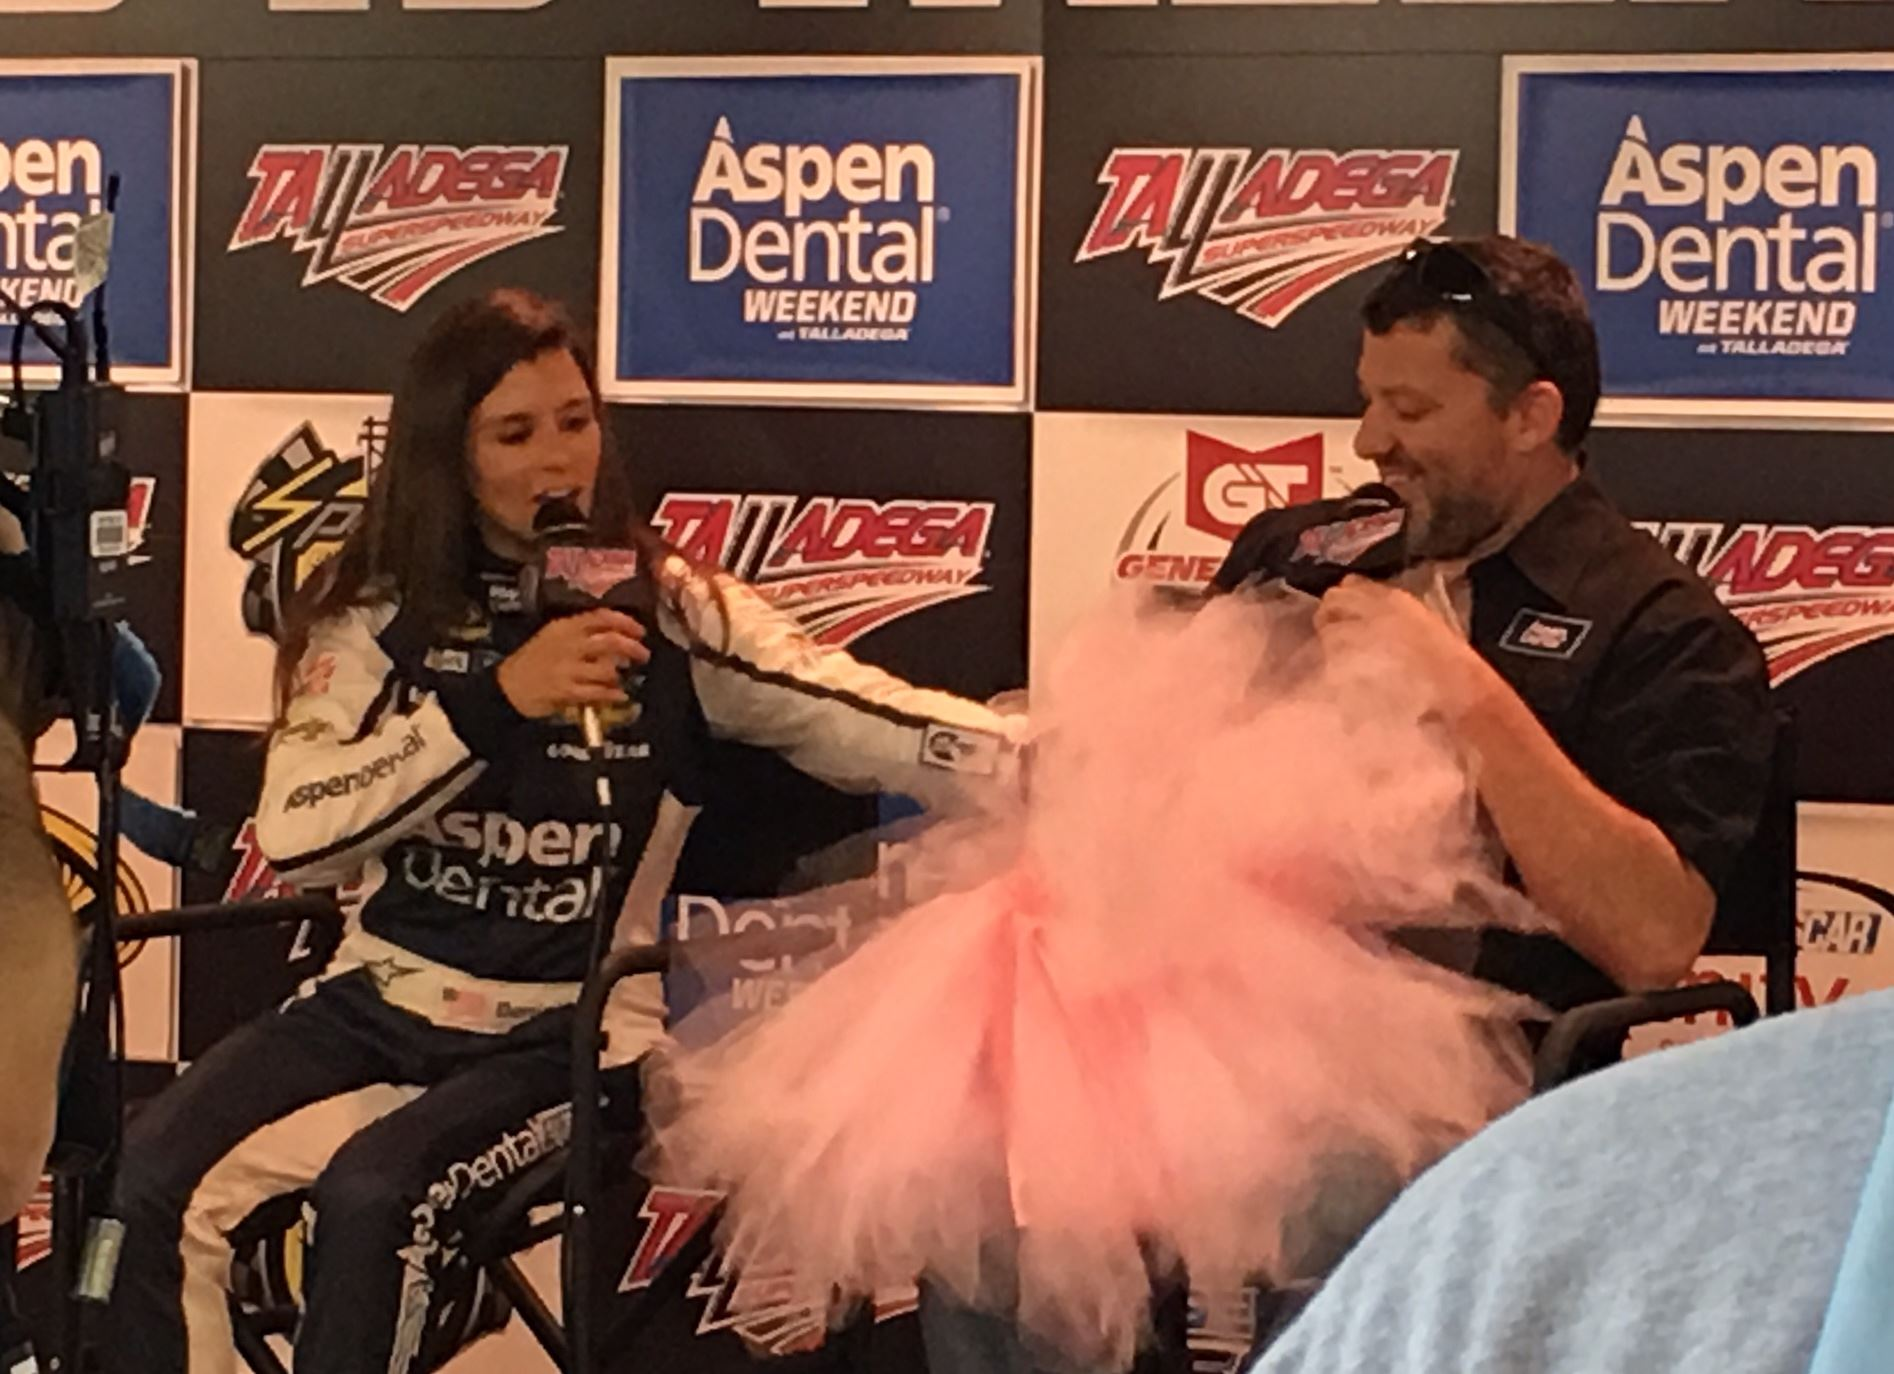 Sprint Cup drivers Danica Patrick and Tony Stewart share a light sponsor's moment before getting down to serious subjects like lugnuts, drivers councils and relief drivers.